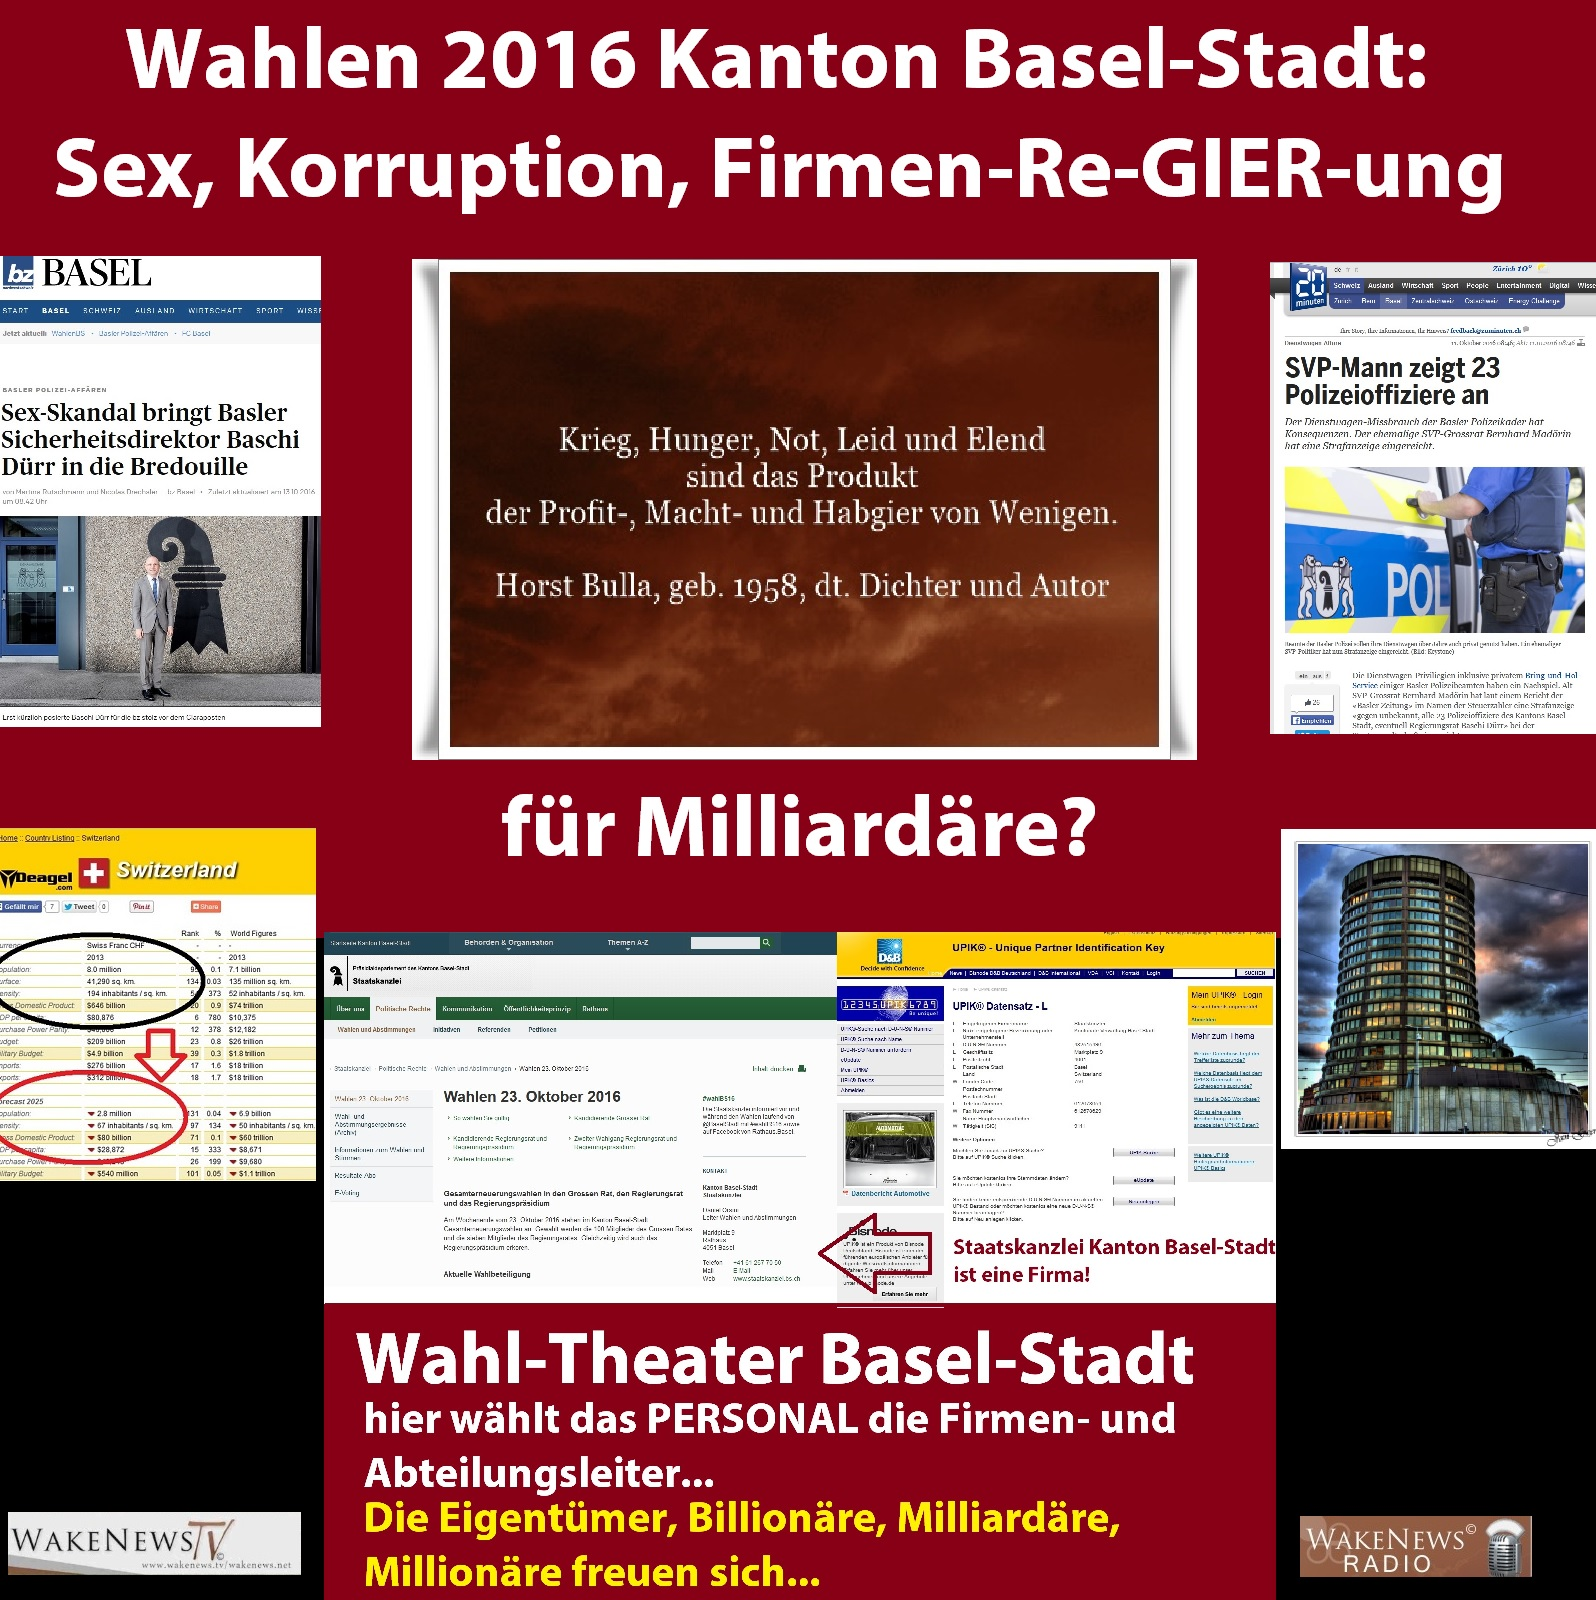 https://mywakenews.files.wordpress.com/2016/10/wahlen-2016-kanton-basel-stadt.jpg